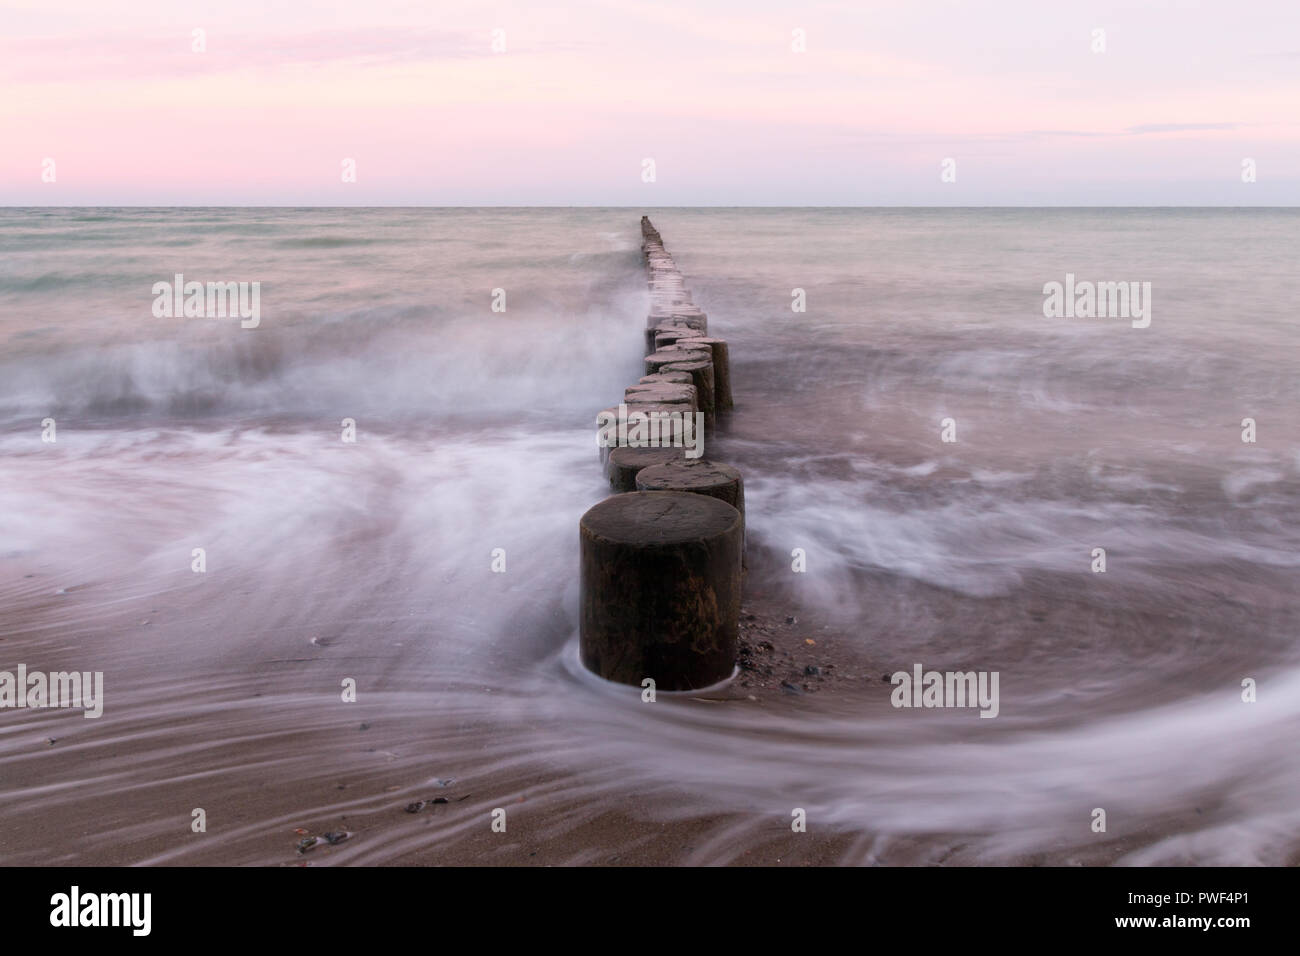 At a stage on the Baltic Sea flows picturesquely the water, long exposure. - Stock Image